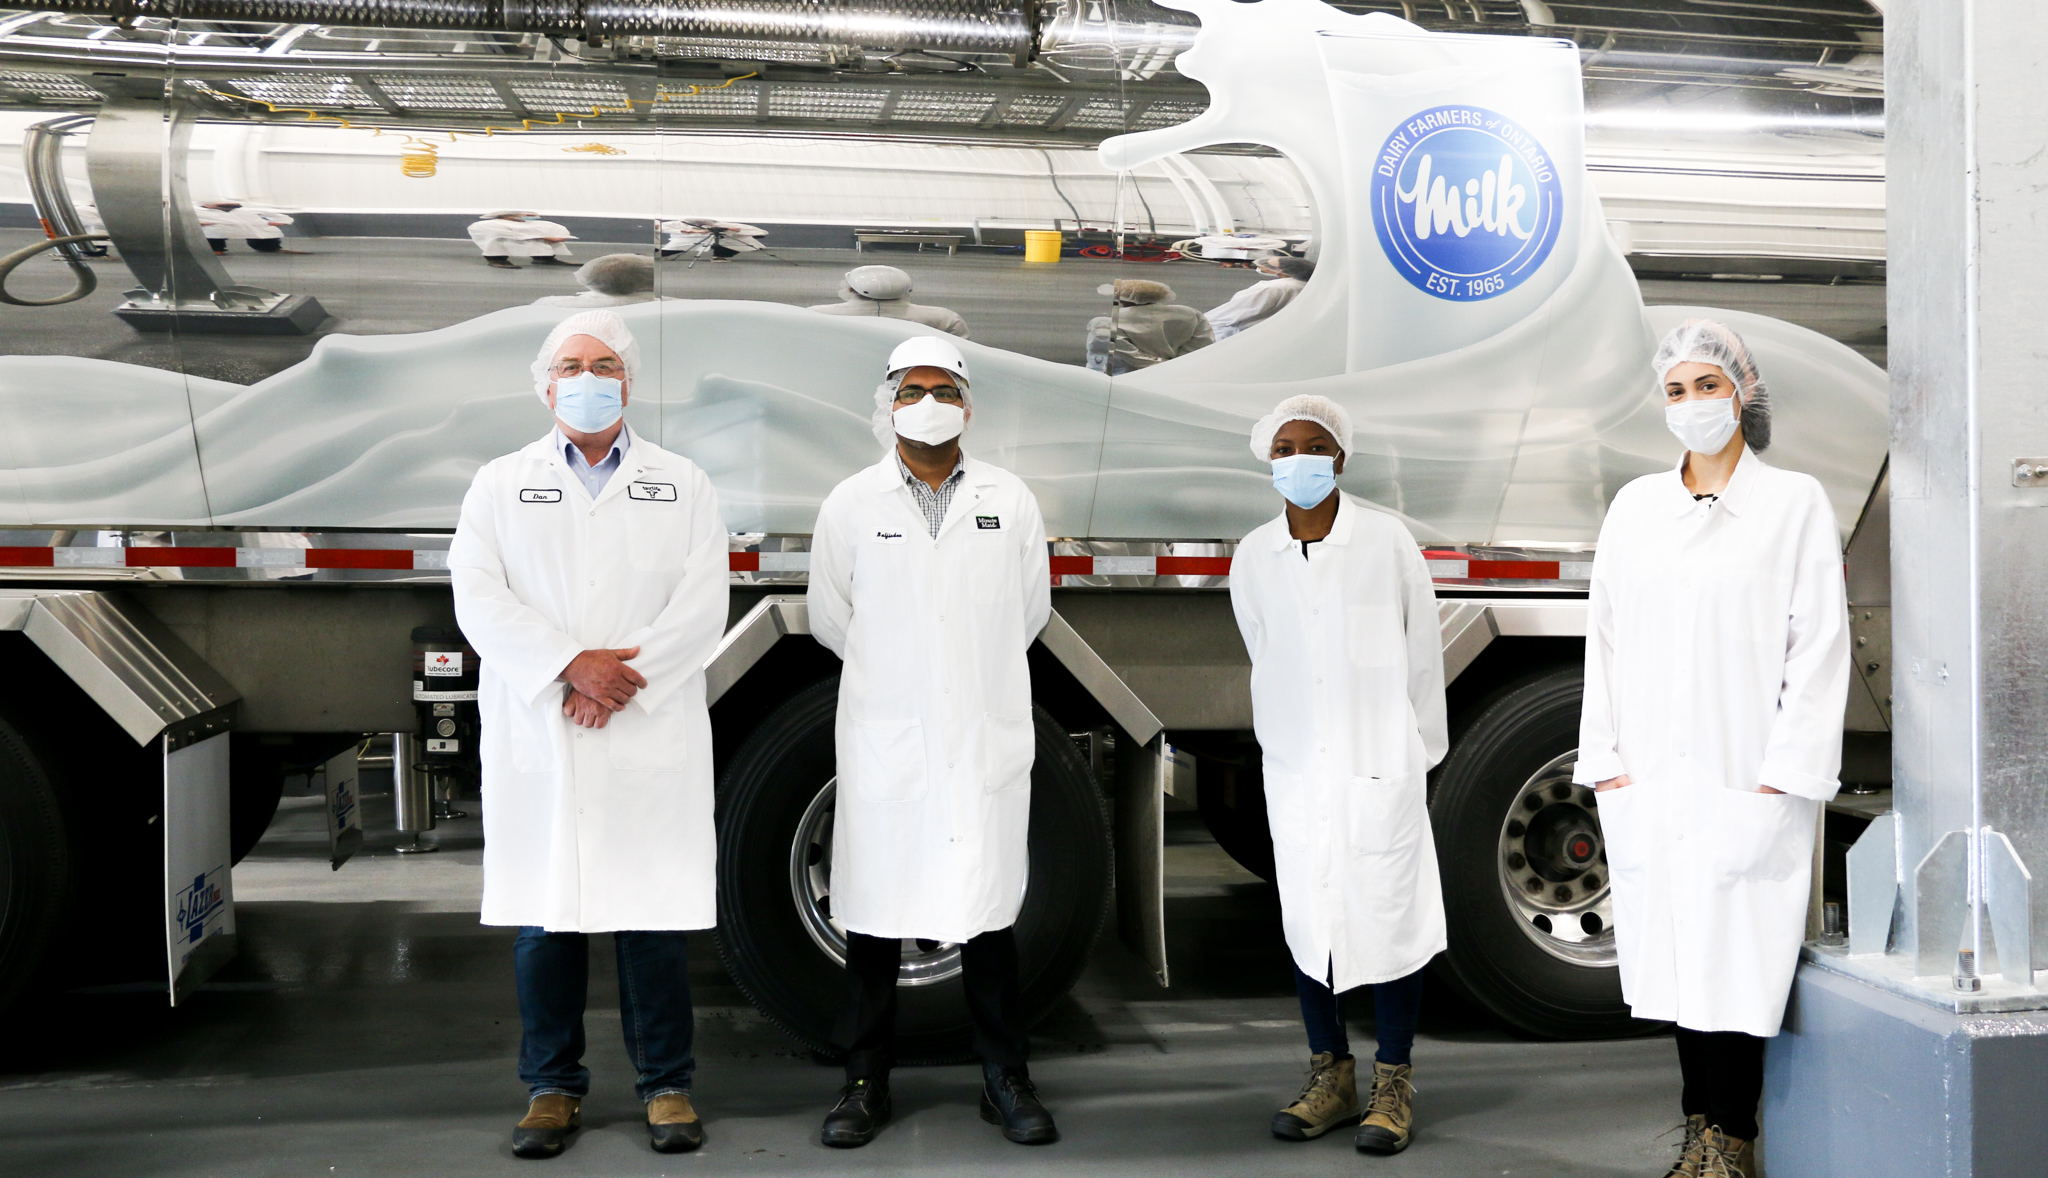 Employees stand in front of a milk truck carrying 100% Canadian milk